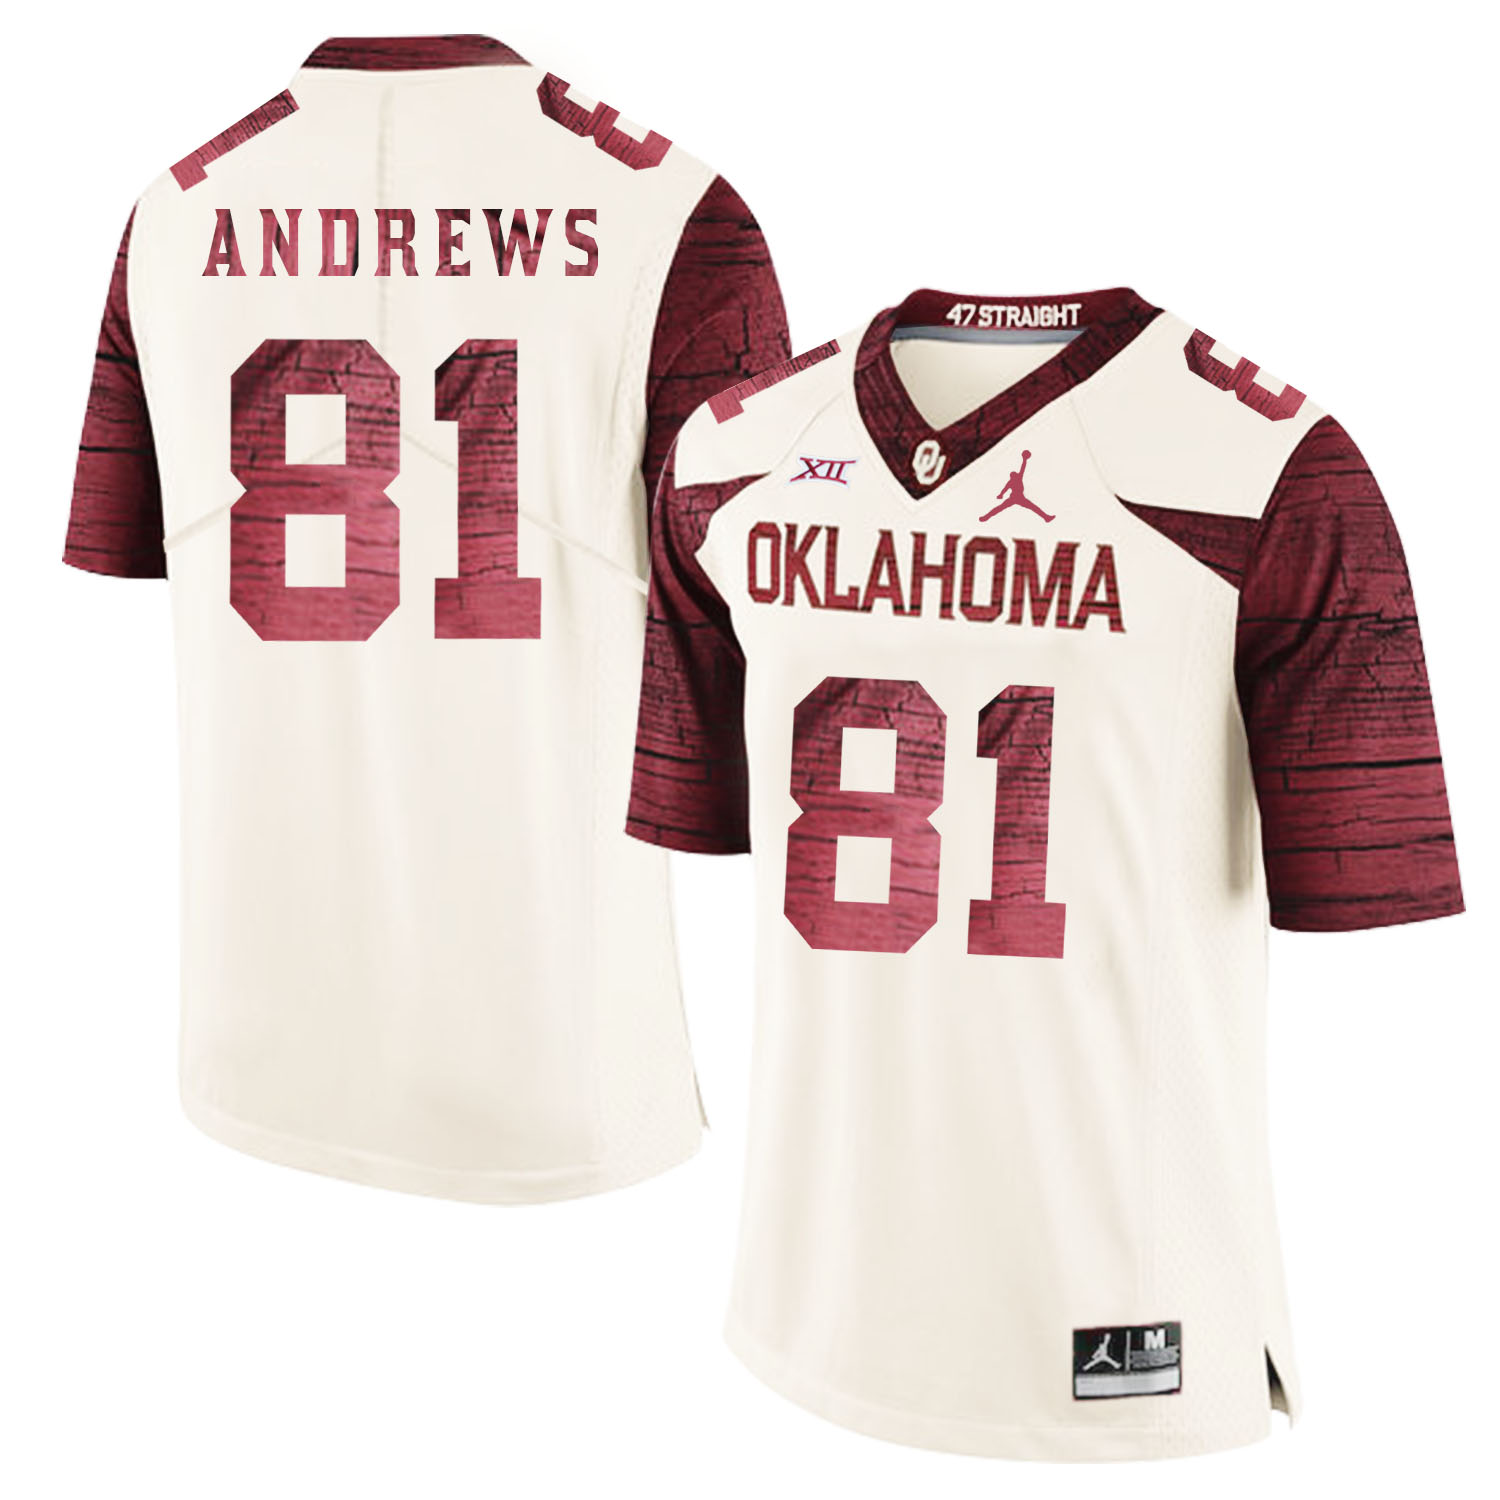 Oklahoma Sooners 81 Mark Andrews White 47 Game Winning Streak College Football Jersey